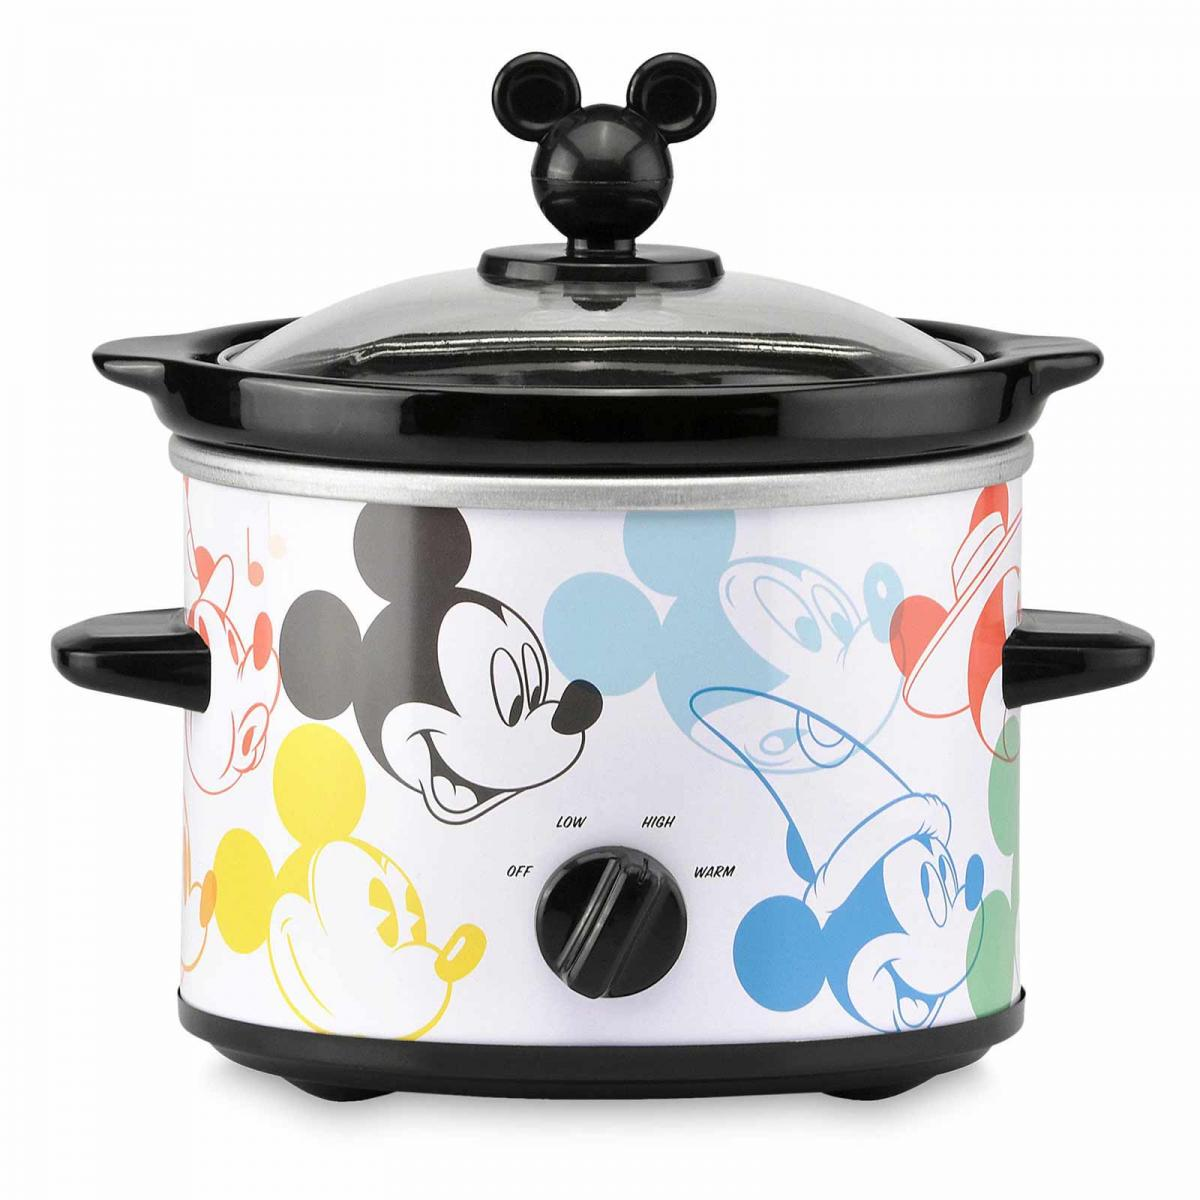 Mickey Mouse 90th Anniversary Slow Cooker